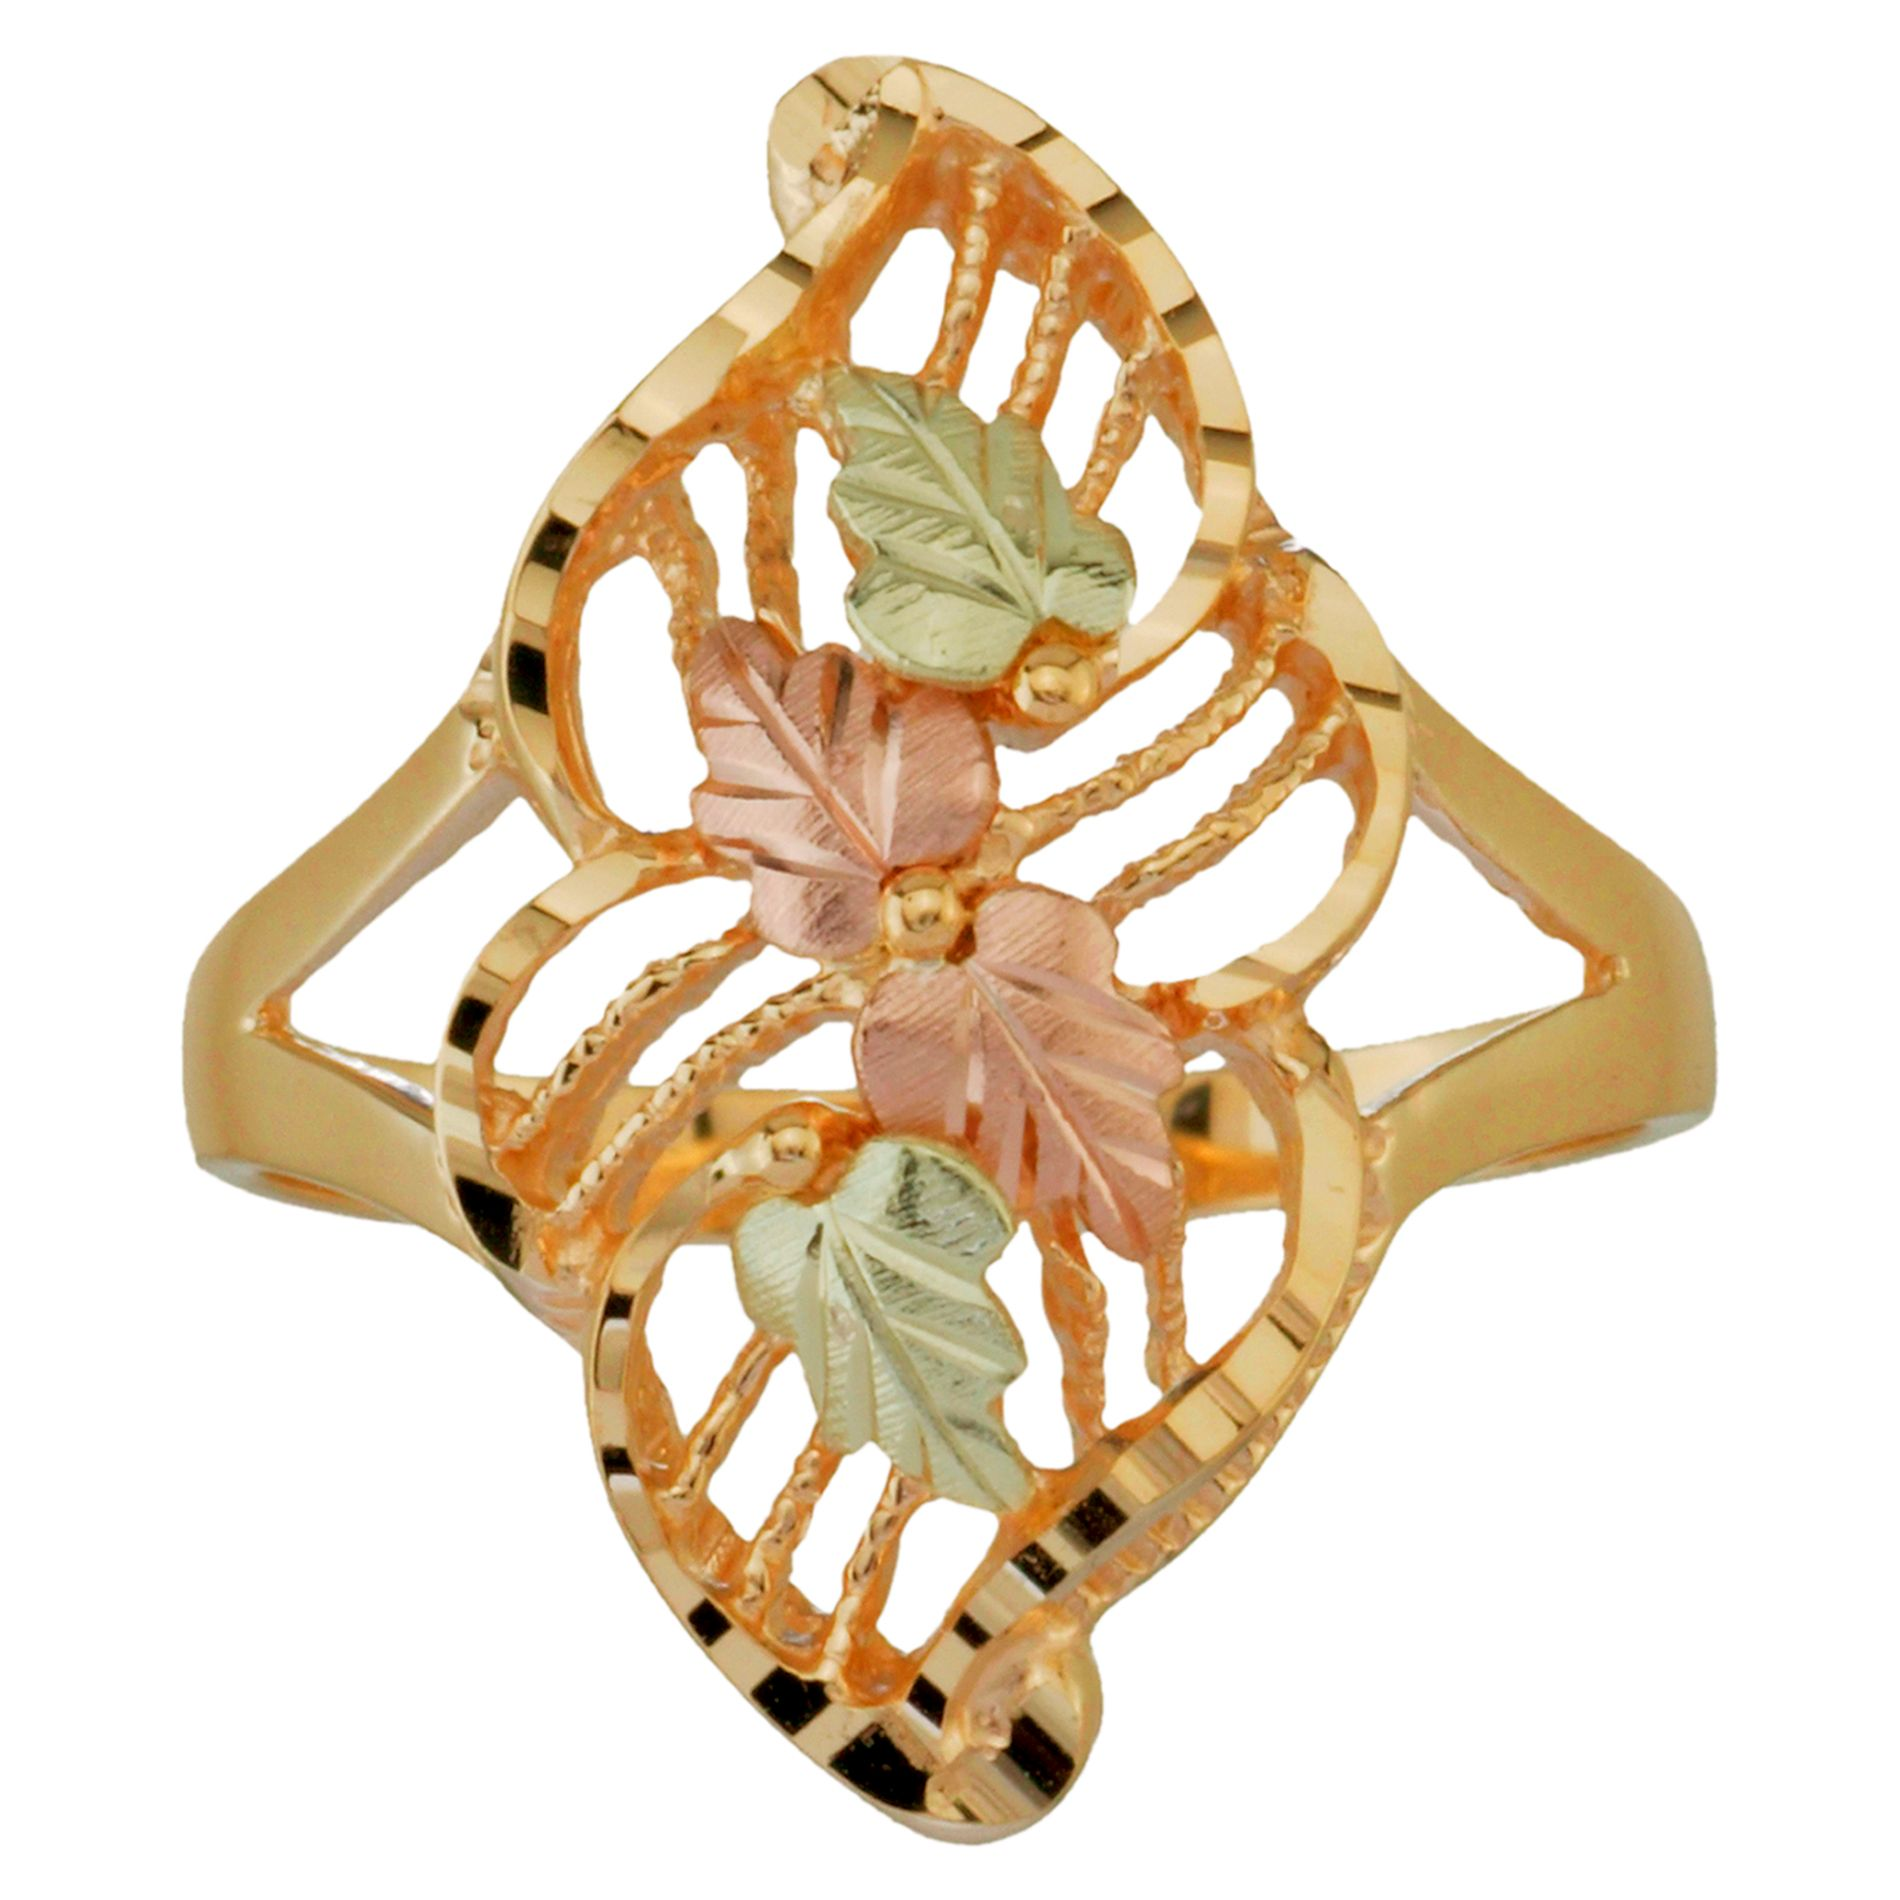 Tricolor 10K Gold Ladies' Elongated Leaf Ring